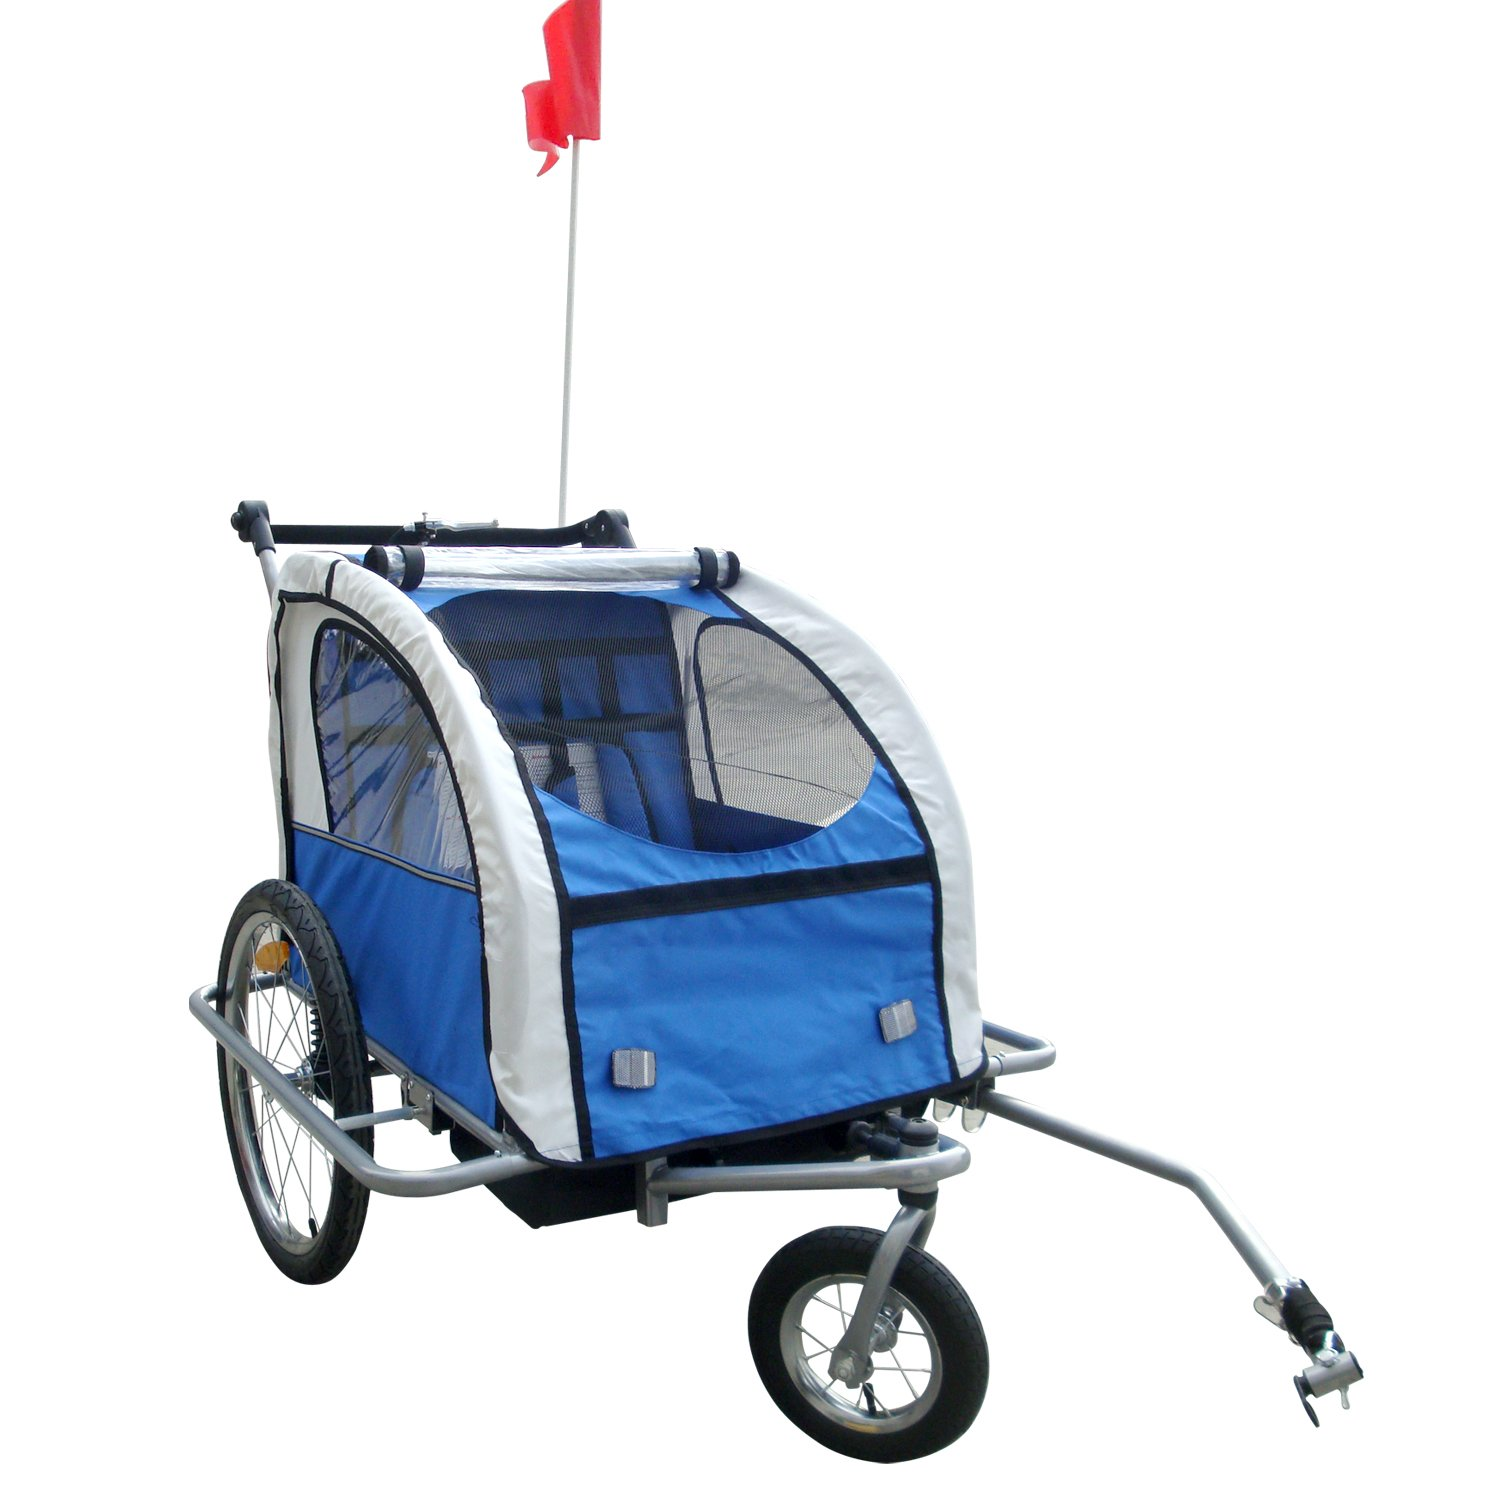 Tenive 2 in 1 Double Child Bike Bicycle Trailer 4 Color Choice, Blue